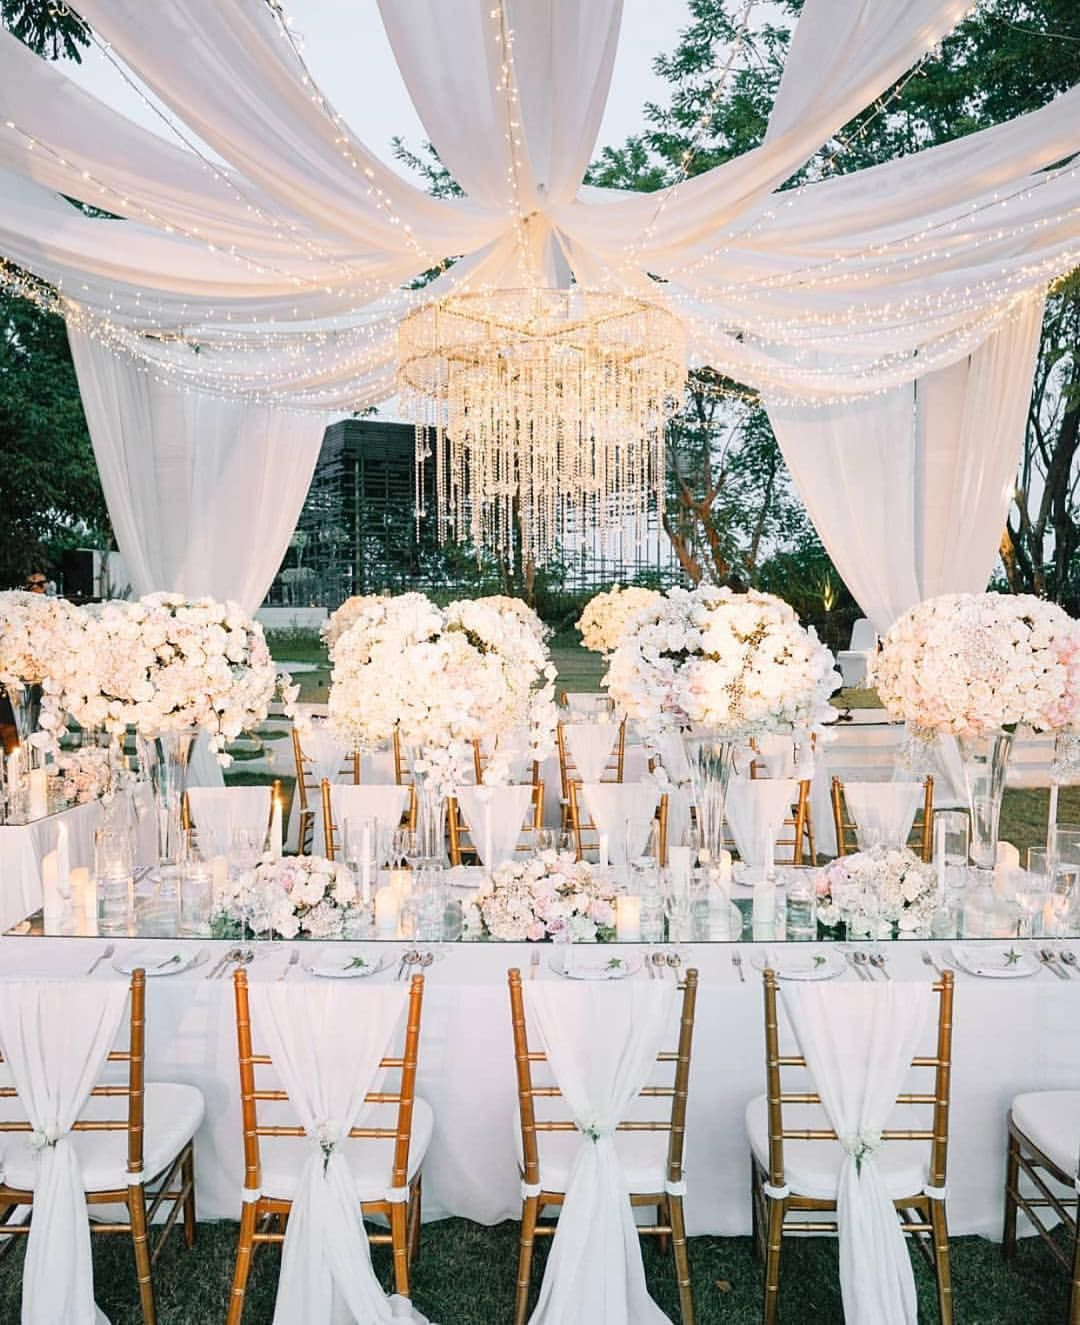 Magical Wedding Backdrop Ideas: Living For This Magical Tented Wedding Reception! Tag A